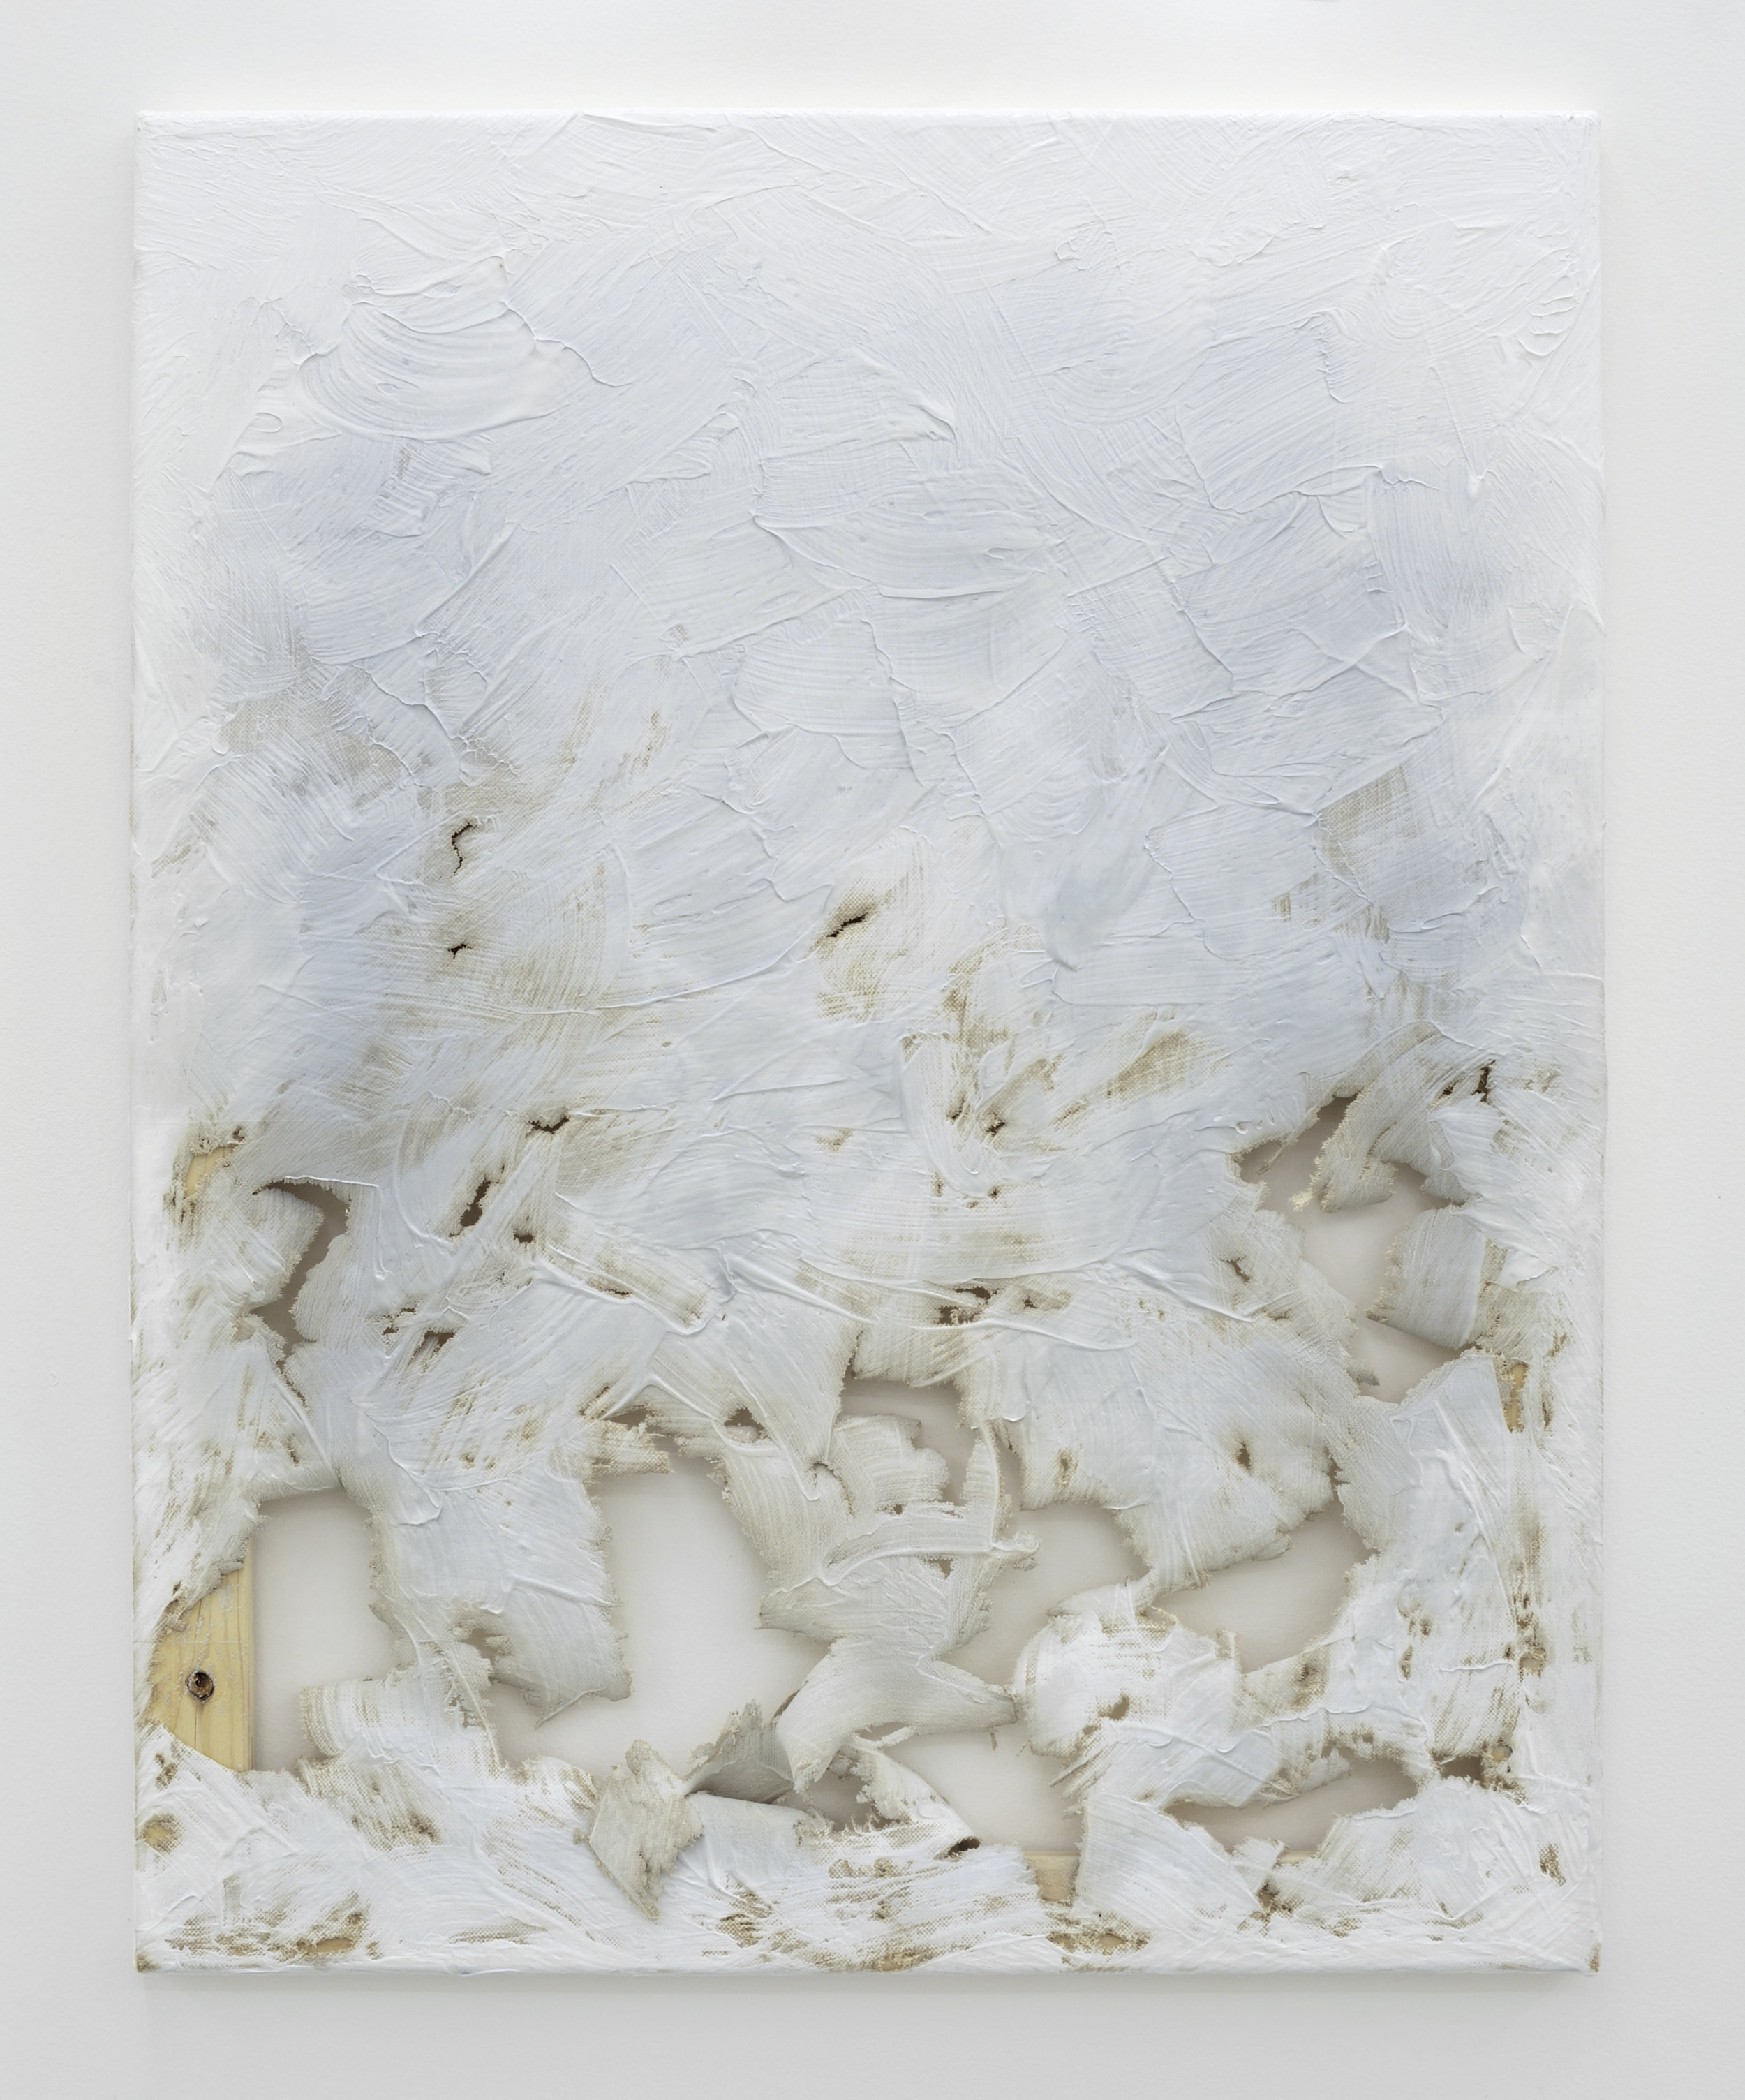 Fade Out (from White) #2, 2011 laser-carved acrylic on canvas 70,5 x 56 x 2 cm - 27 3/4 x 22 x 0 3/4 inches